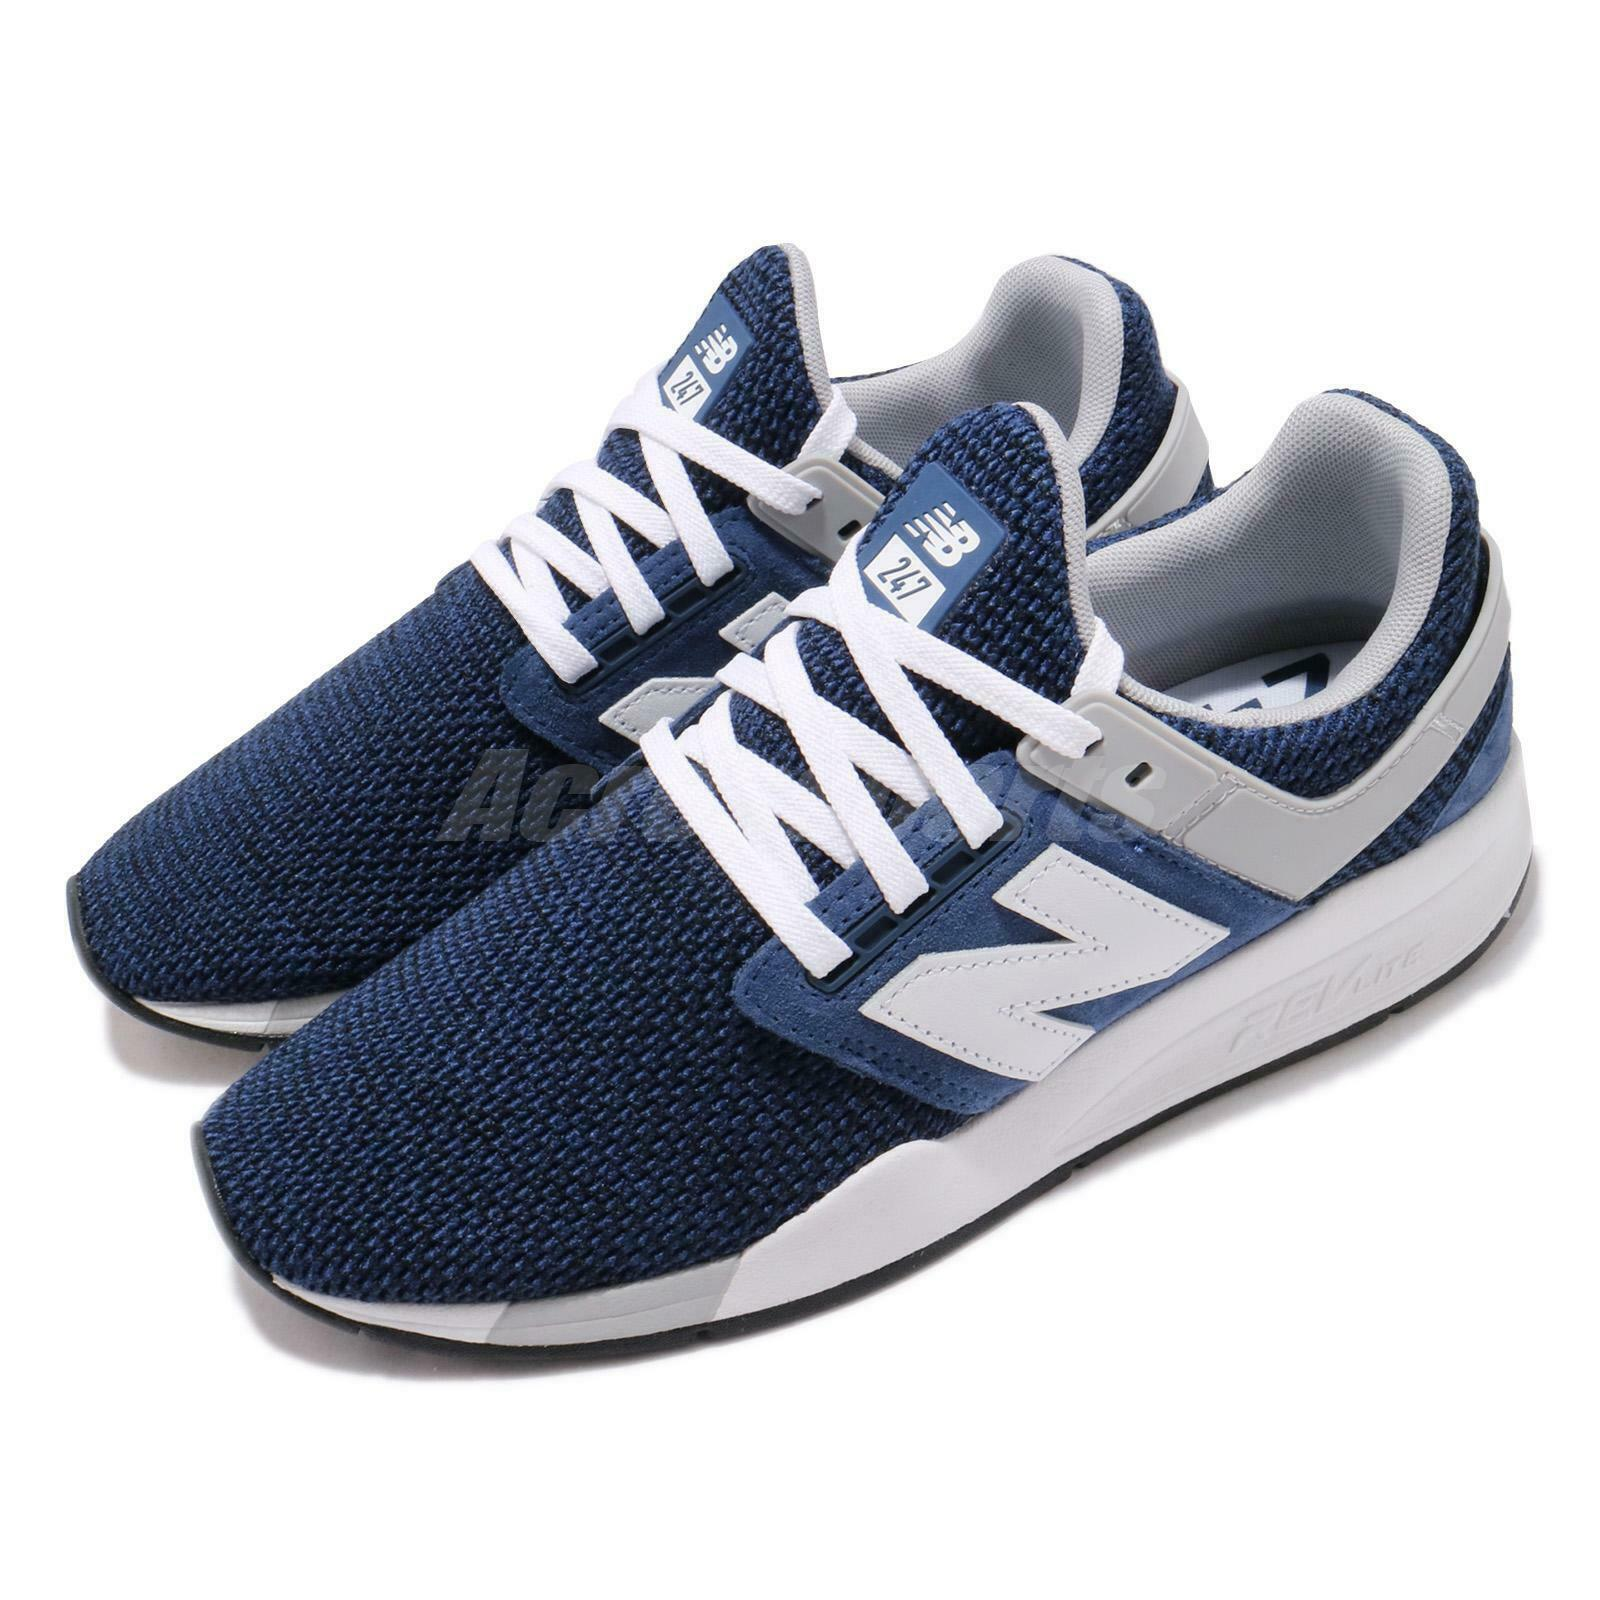 New  Balance MS247FK D bluee Navy White Grey Men Running shoes Sneakers MS247FKD  10 days return